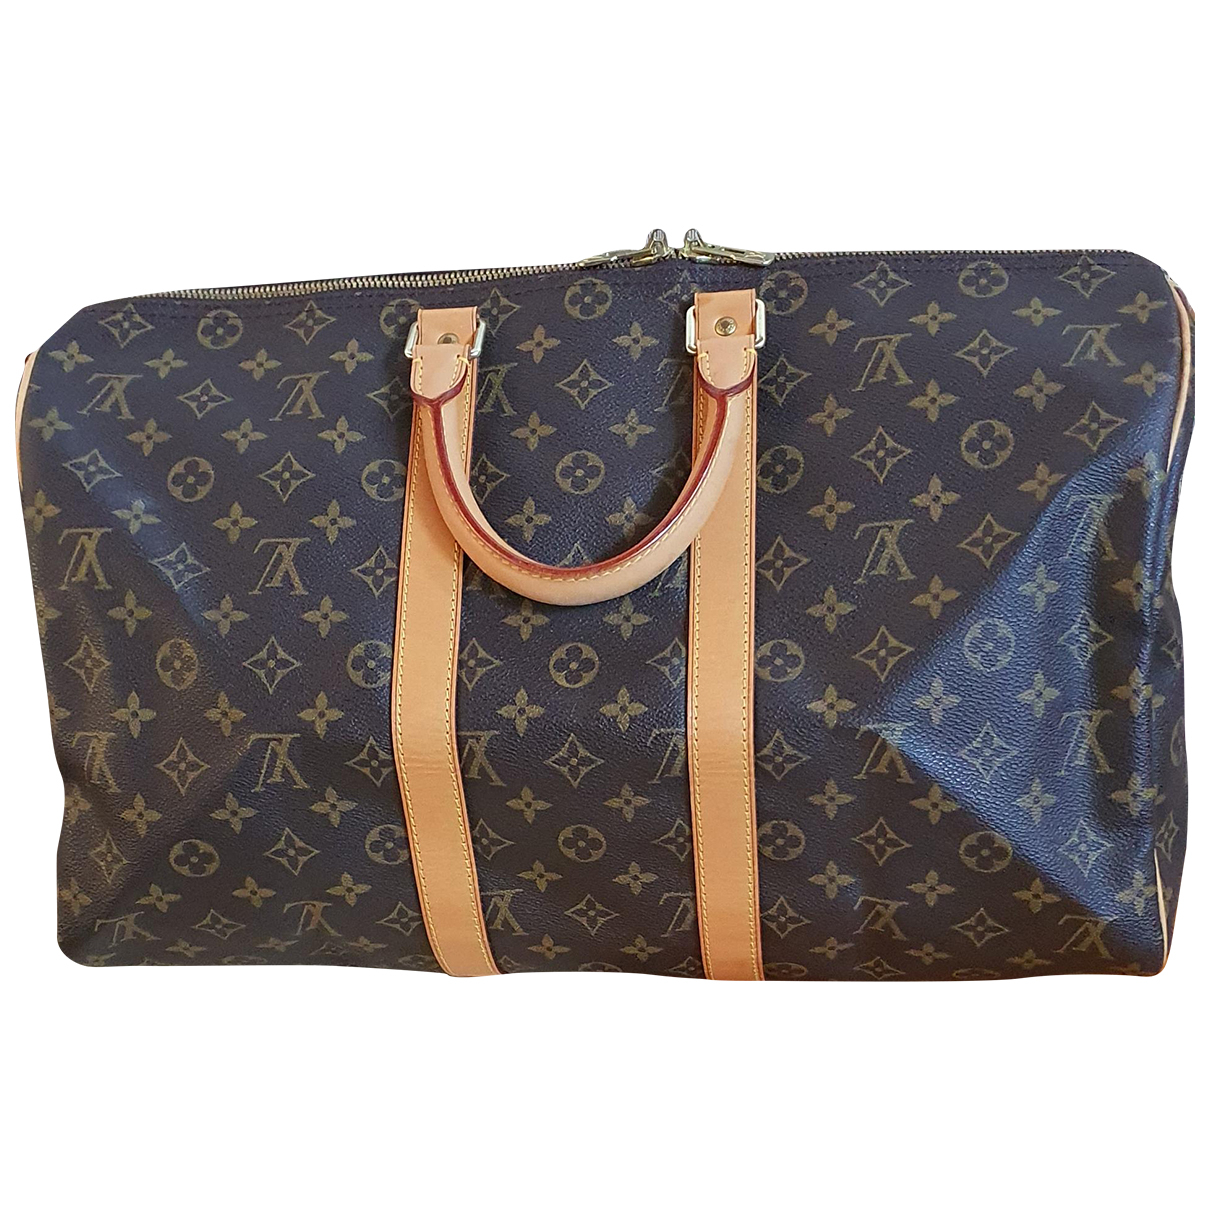 Louis Vuitton Keepall Multicolour Leather Travel bag for Women N